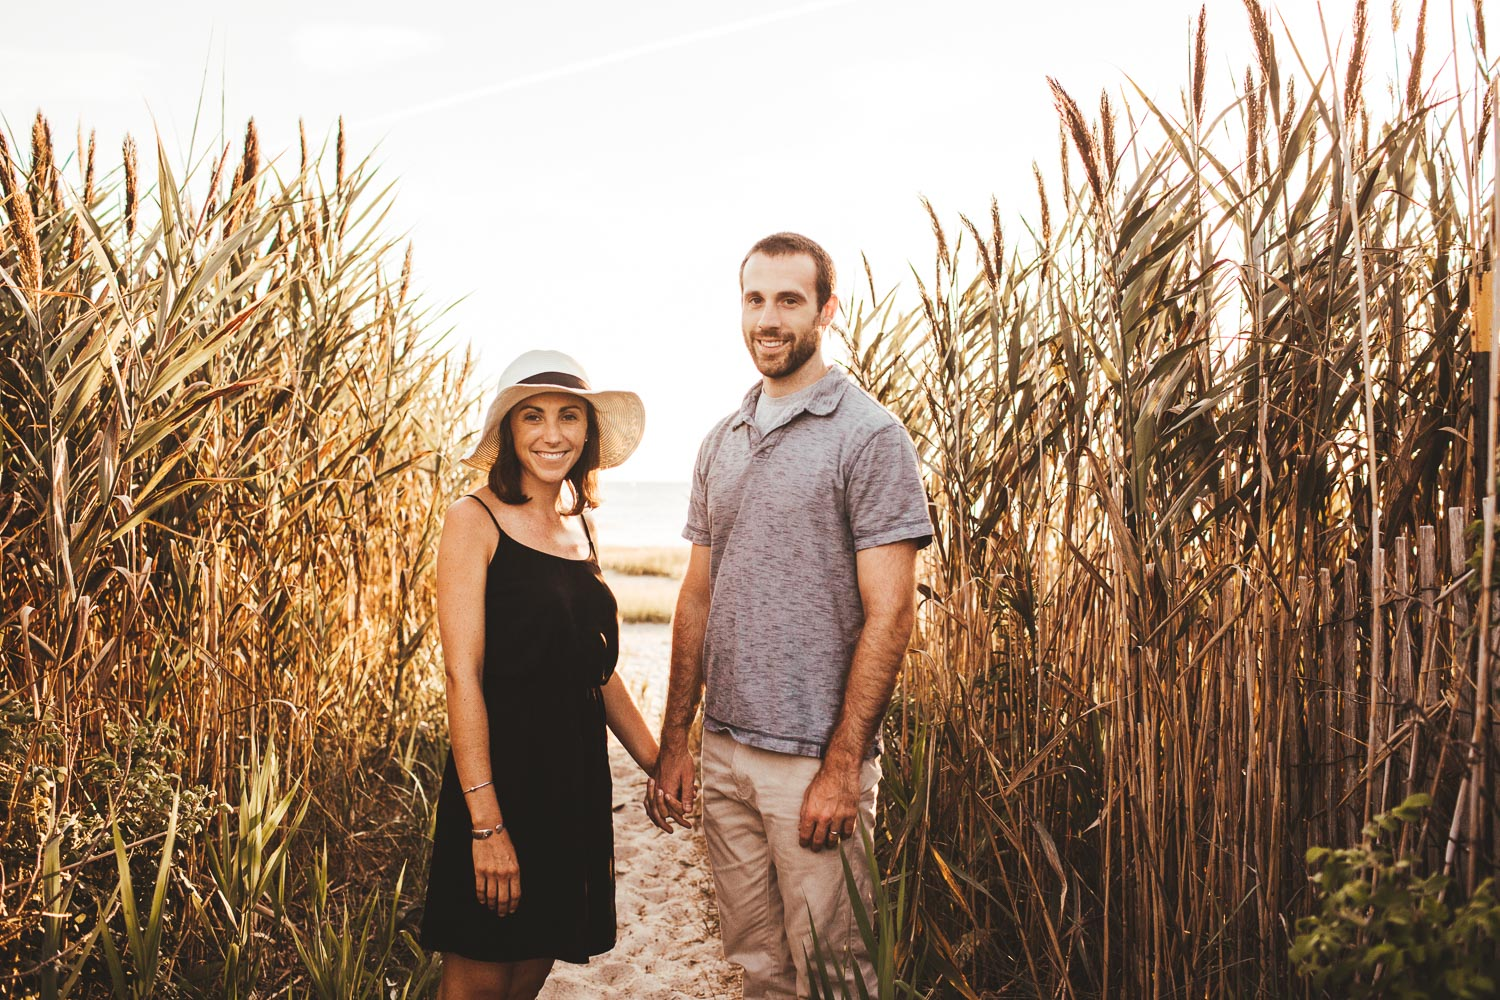 Cape Cod Beach Engagement Session